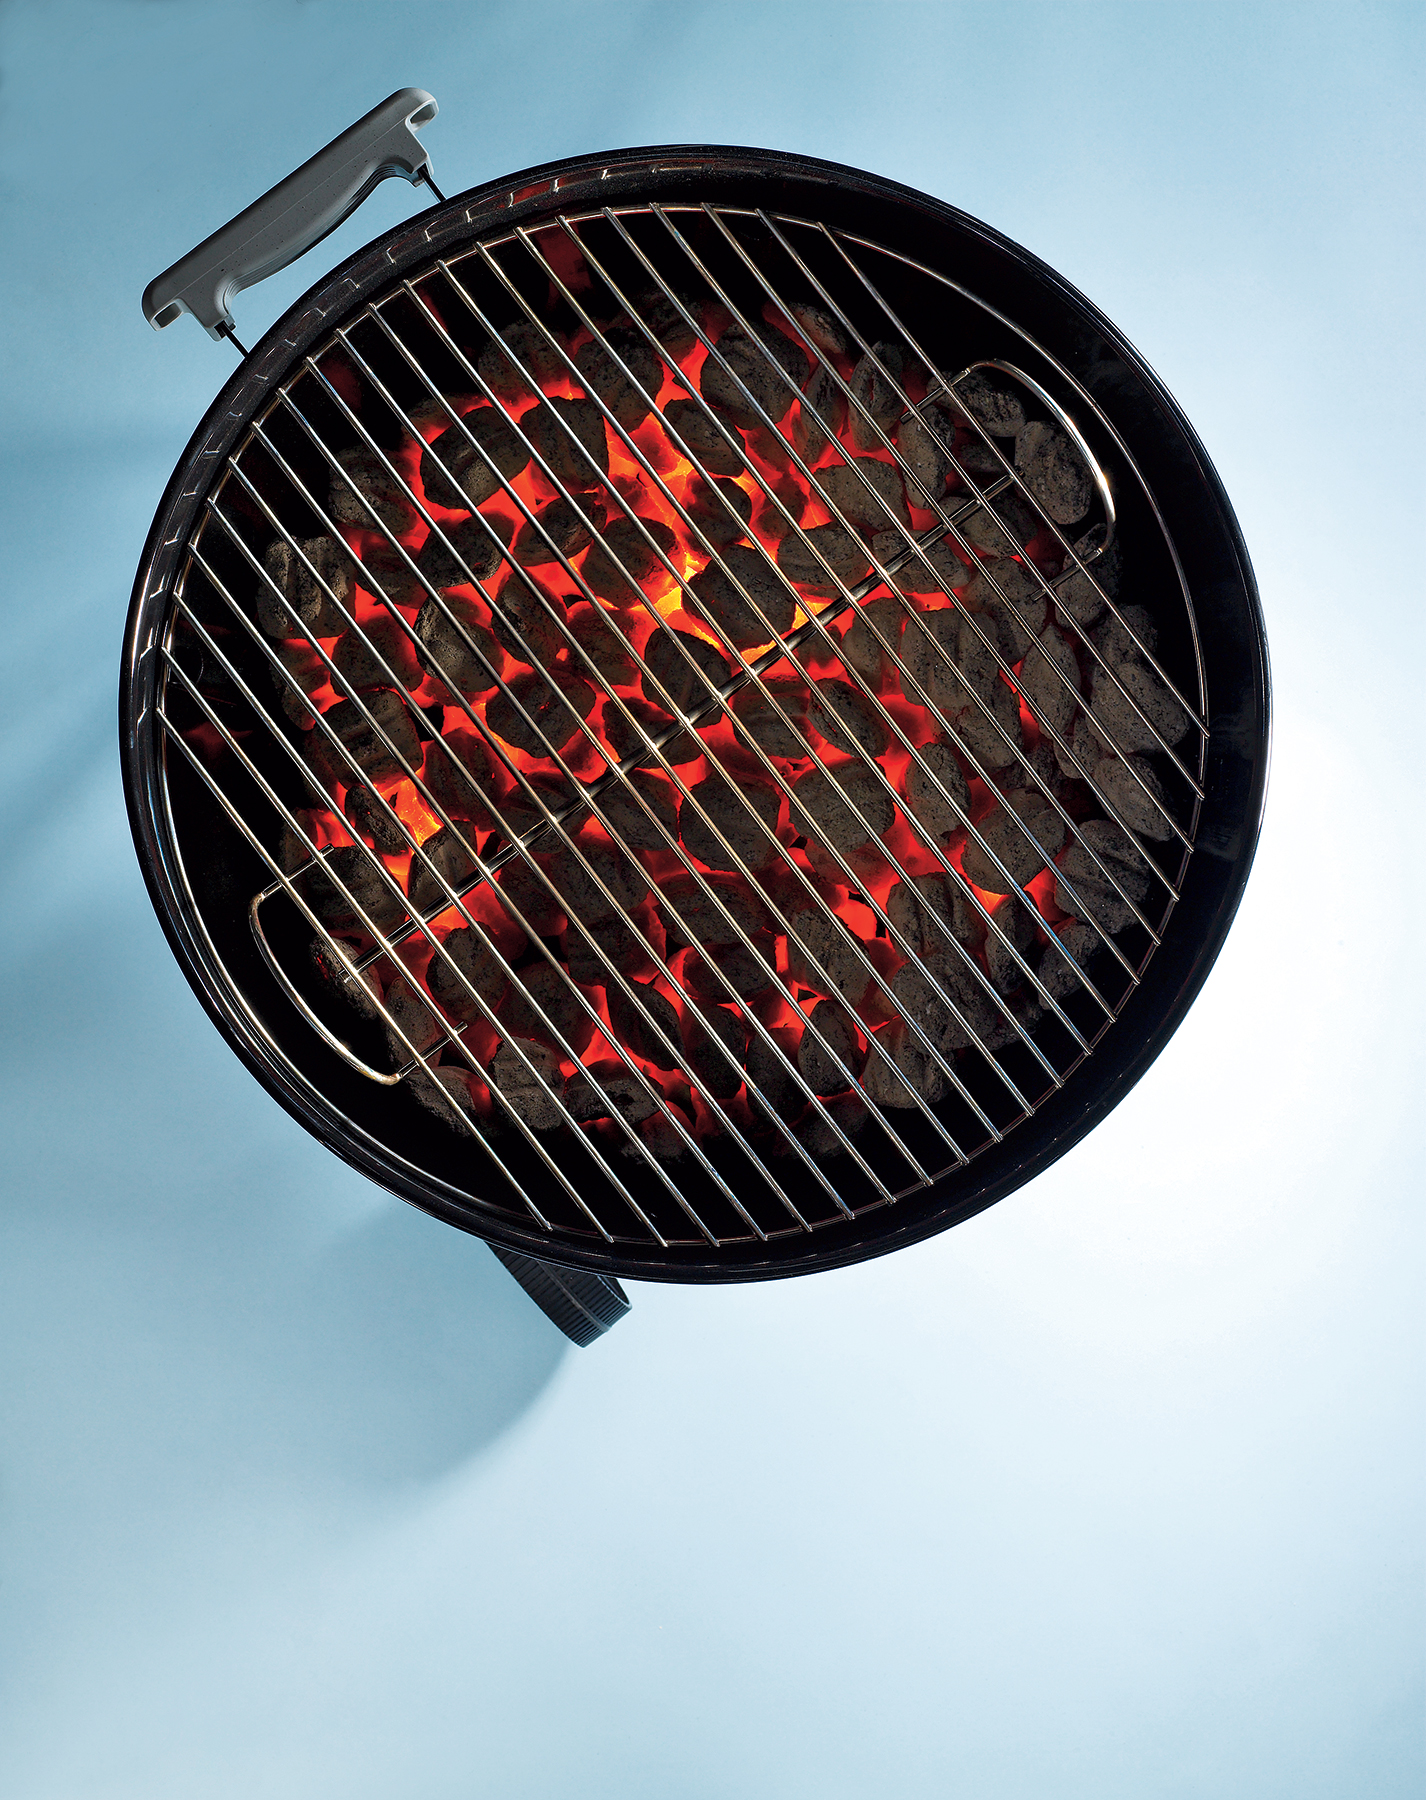 Round barbecue grill with burning embers